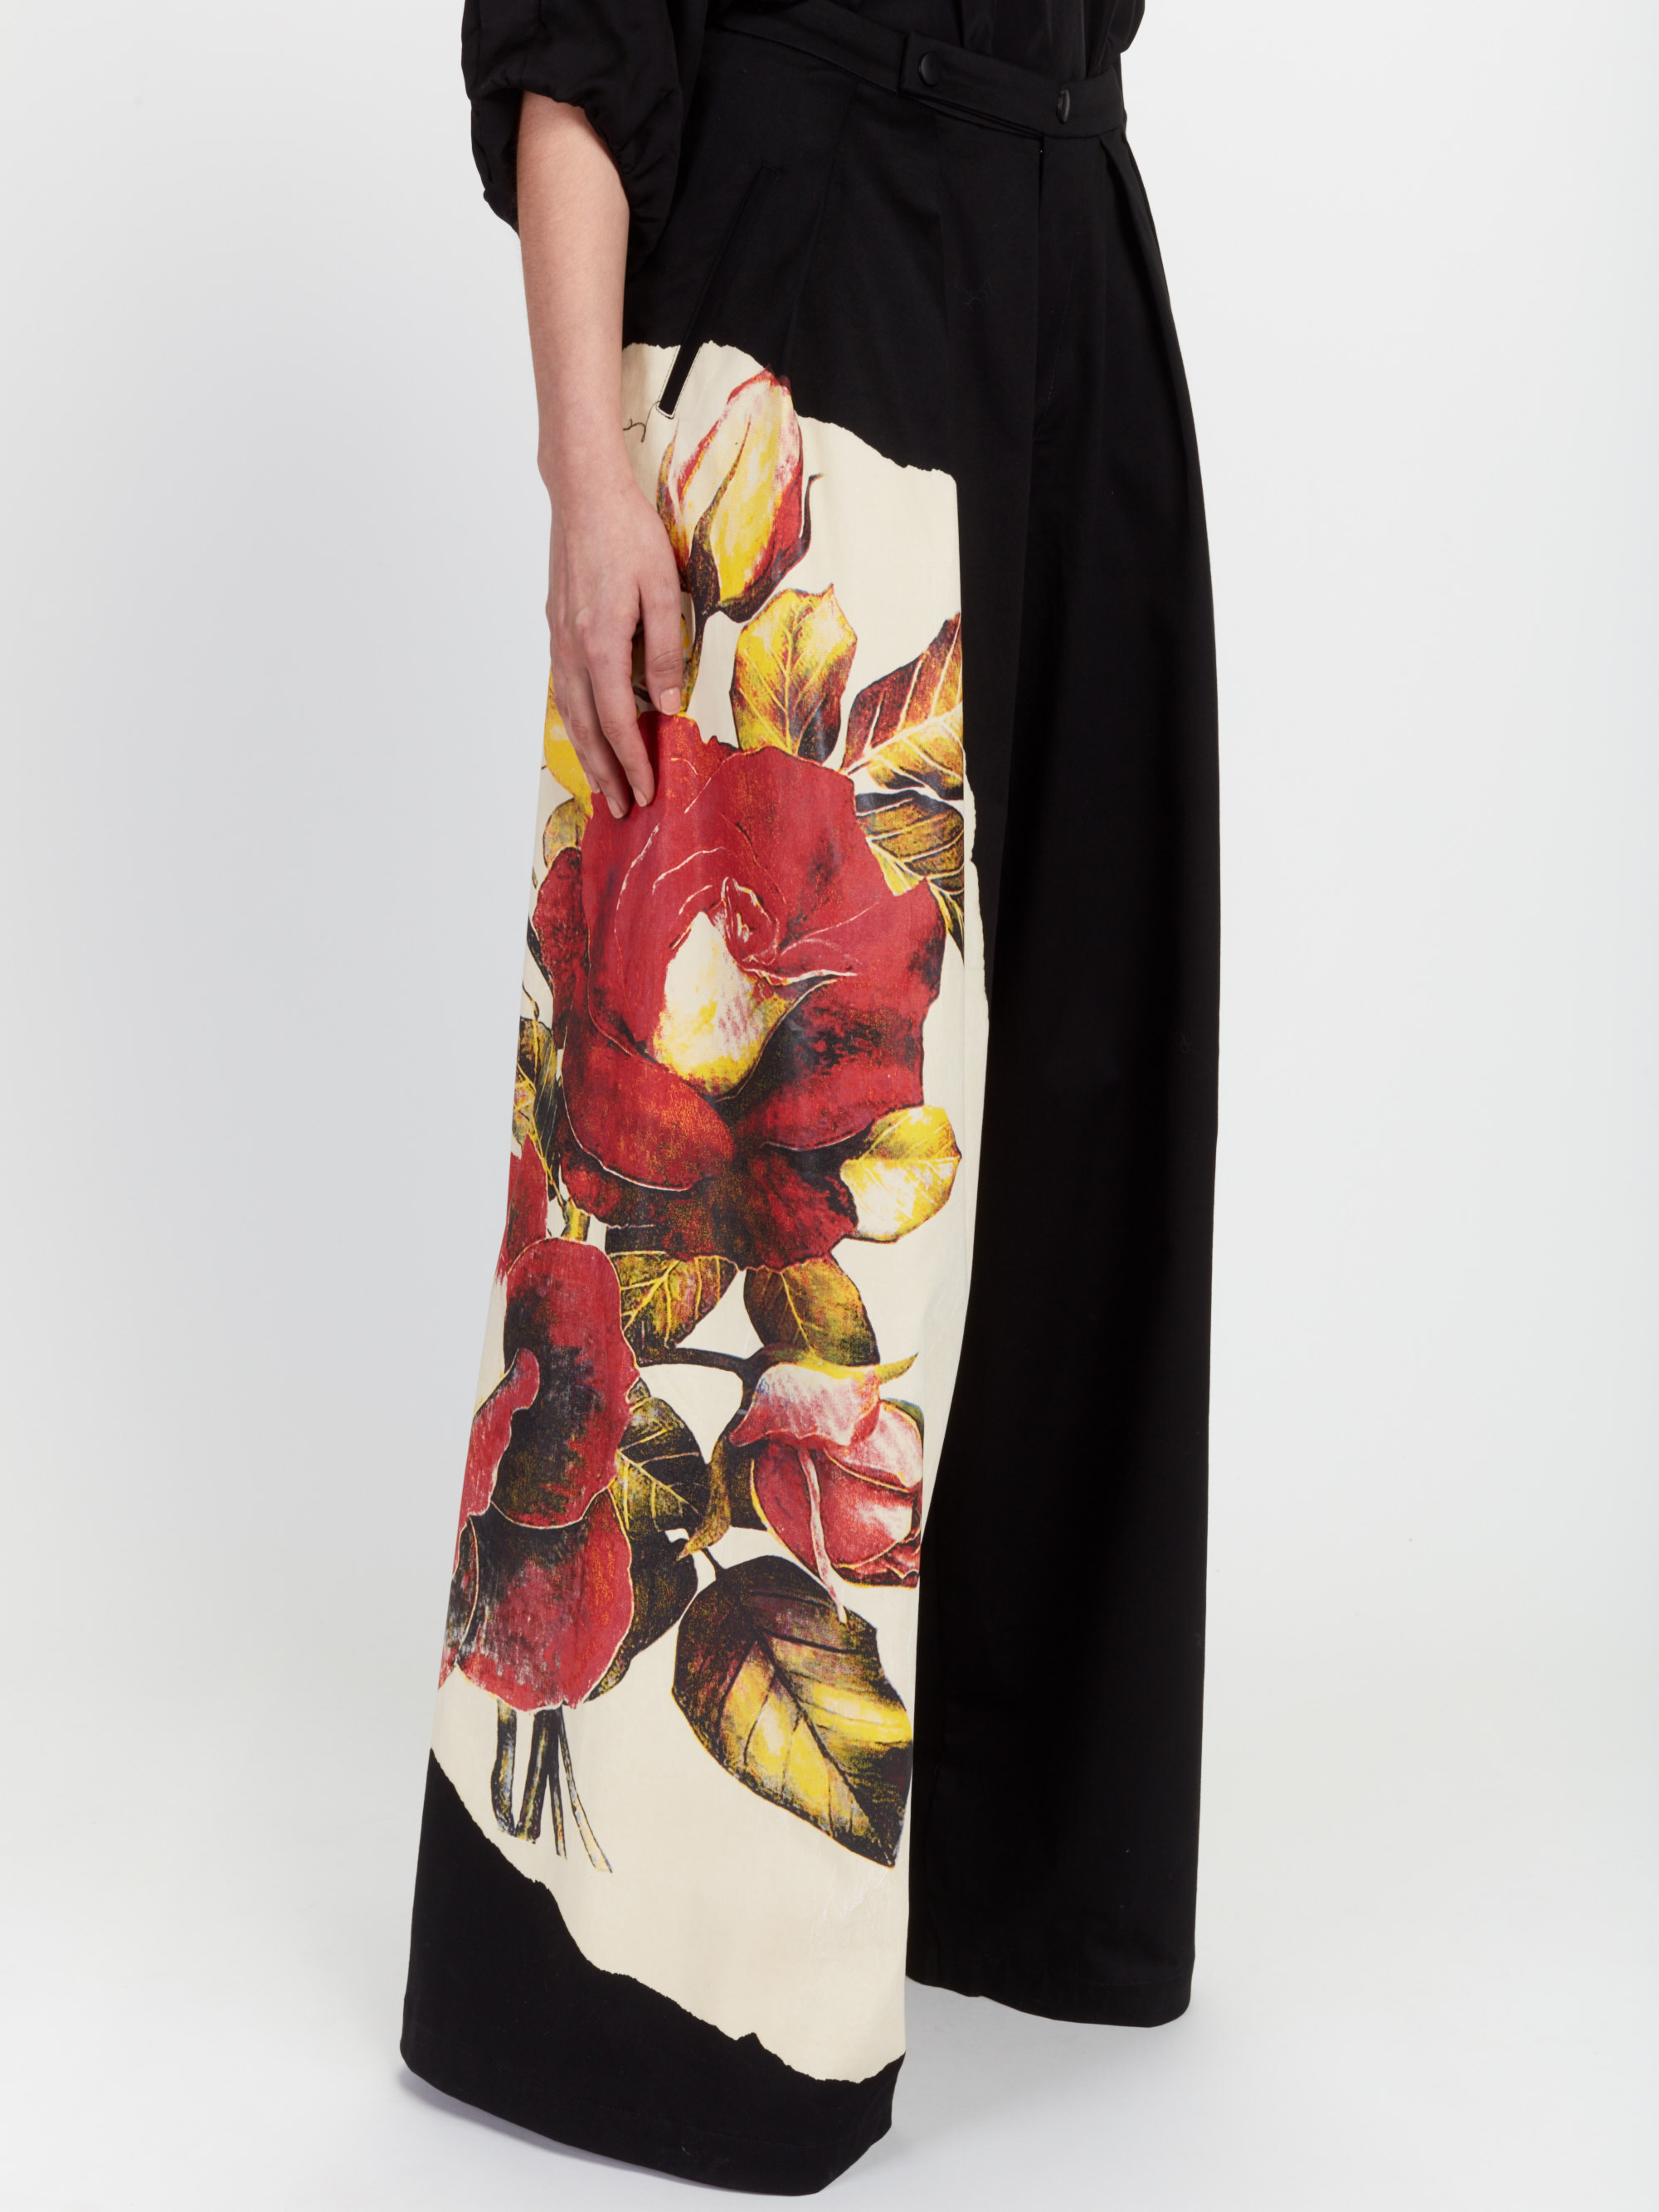 jt_invisible-printed-pant_30-26-2018__picture-1751